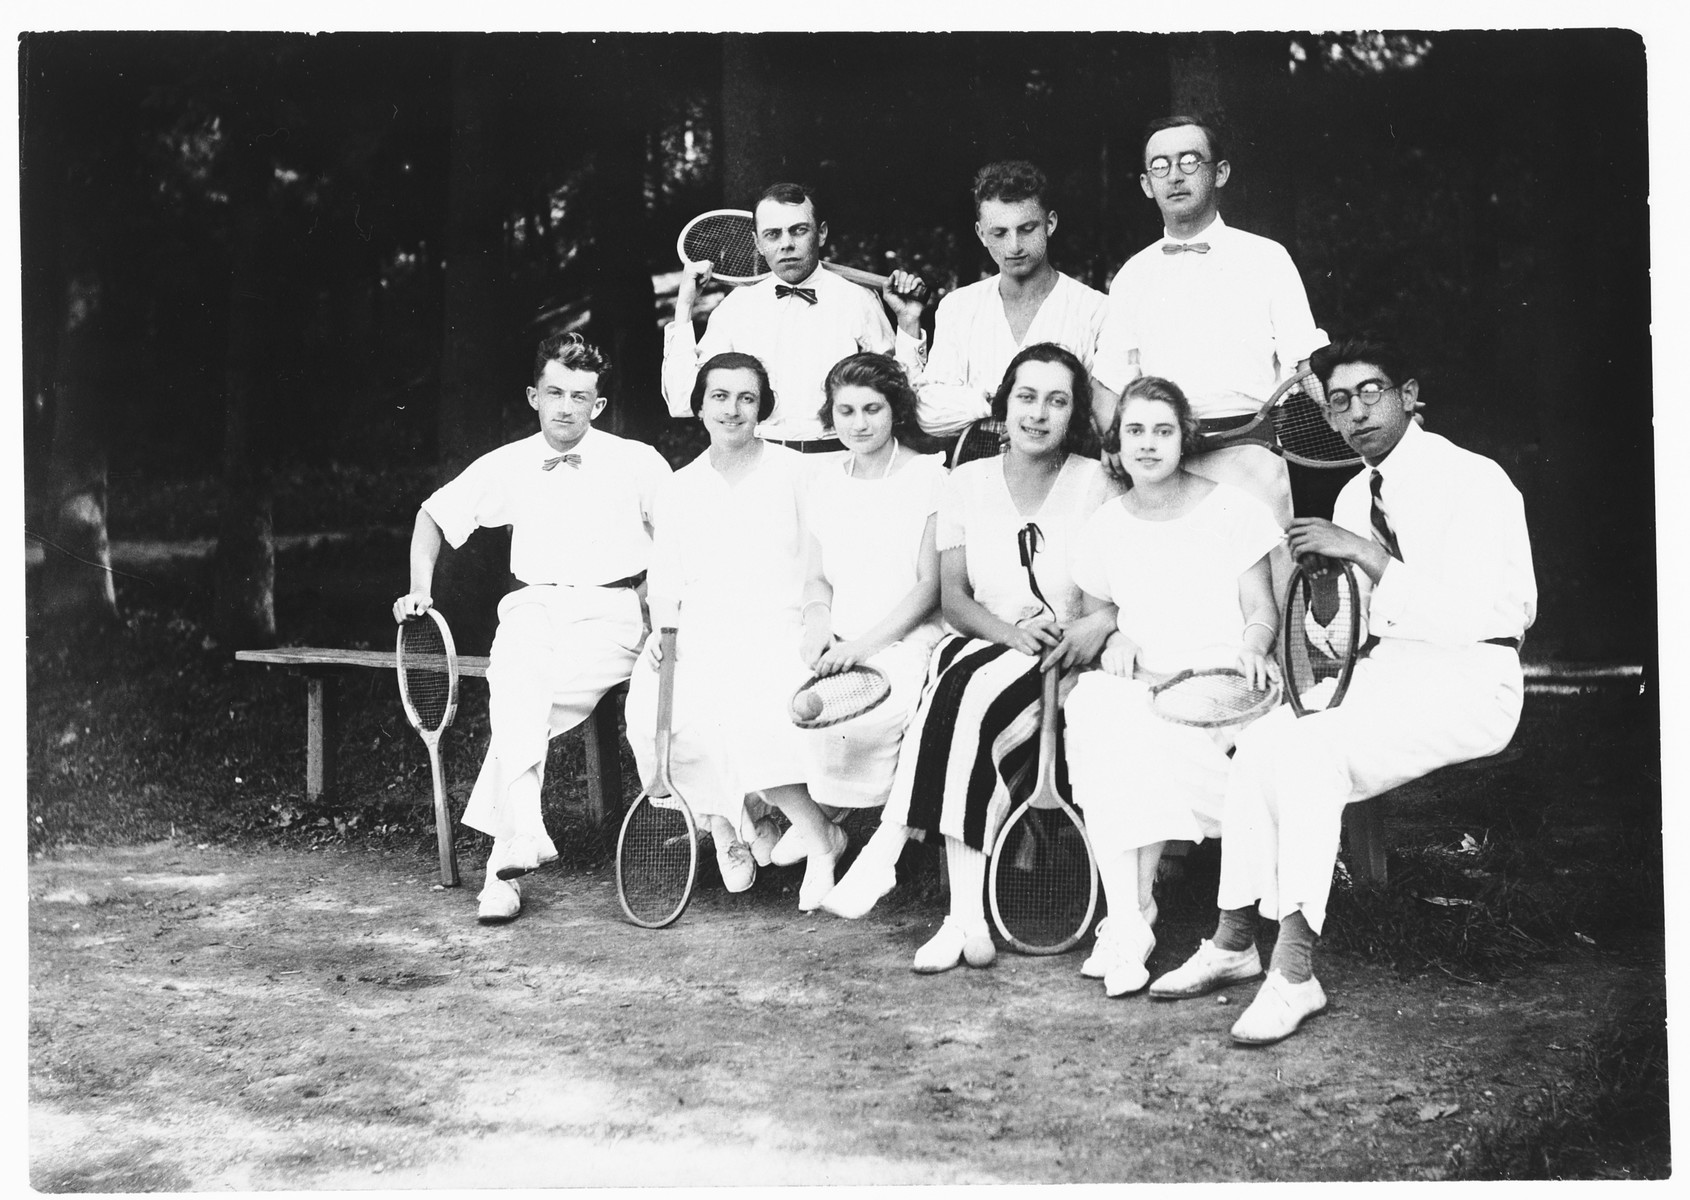 Group portrait of young Jewish and non-Jewish members of a tennis club in Ludbreg, Croatia.  Among those pictured are Giza Deutsch (front row, second from the left) and her future husband, Ljudevit (Ludva) Vrancic (behind her).